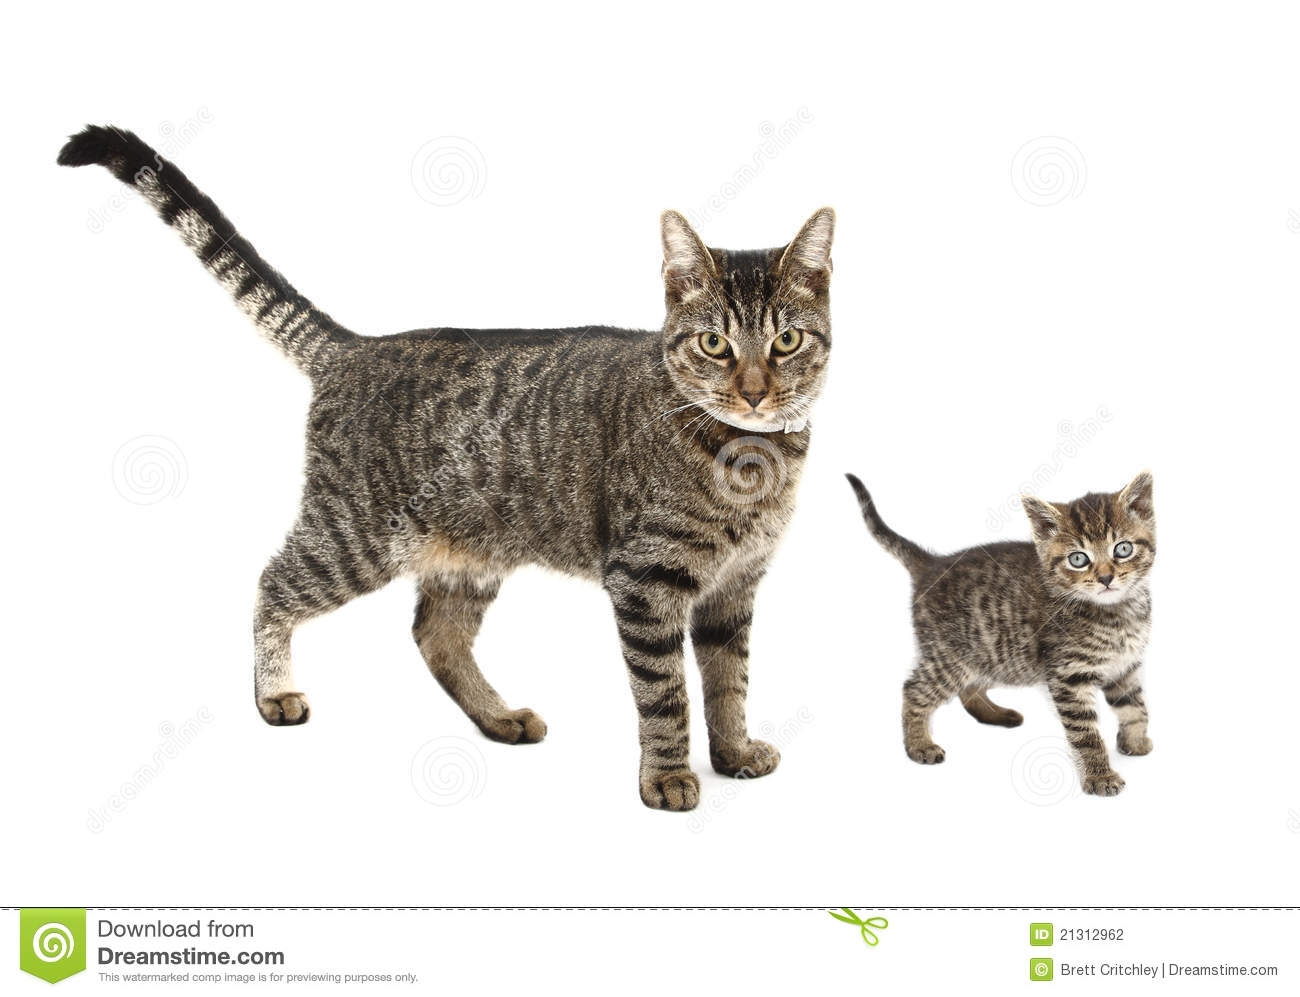 Cats and Kittens Clip Art.